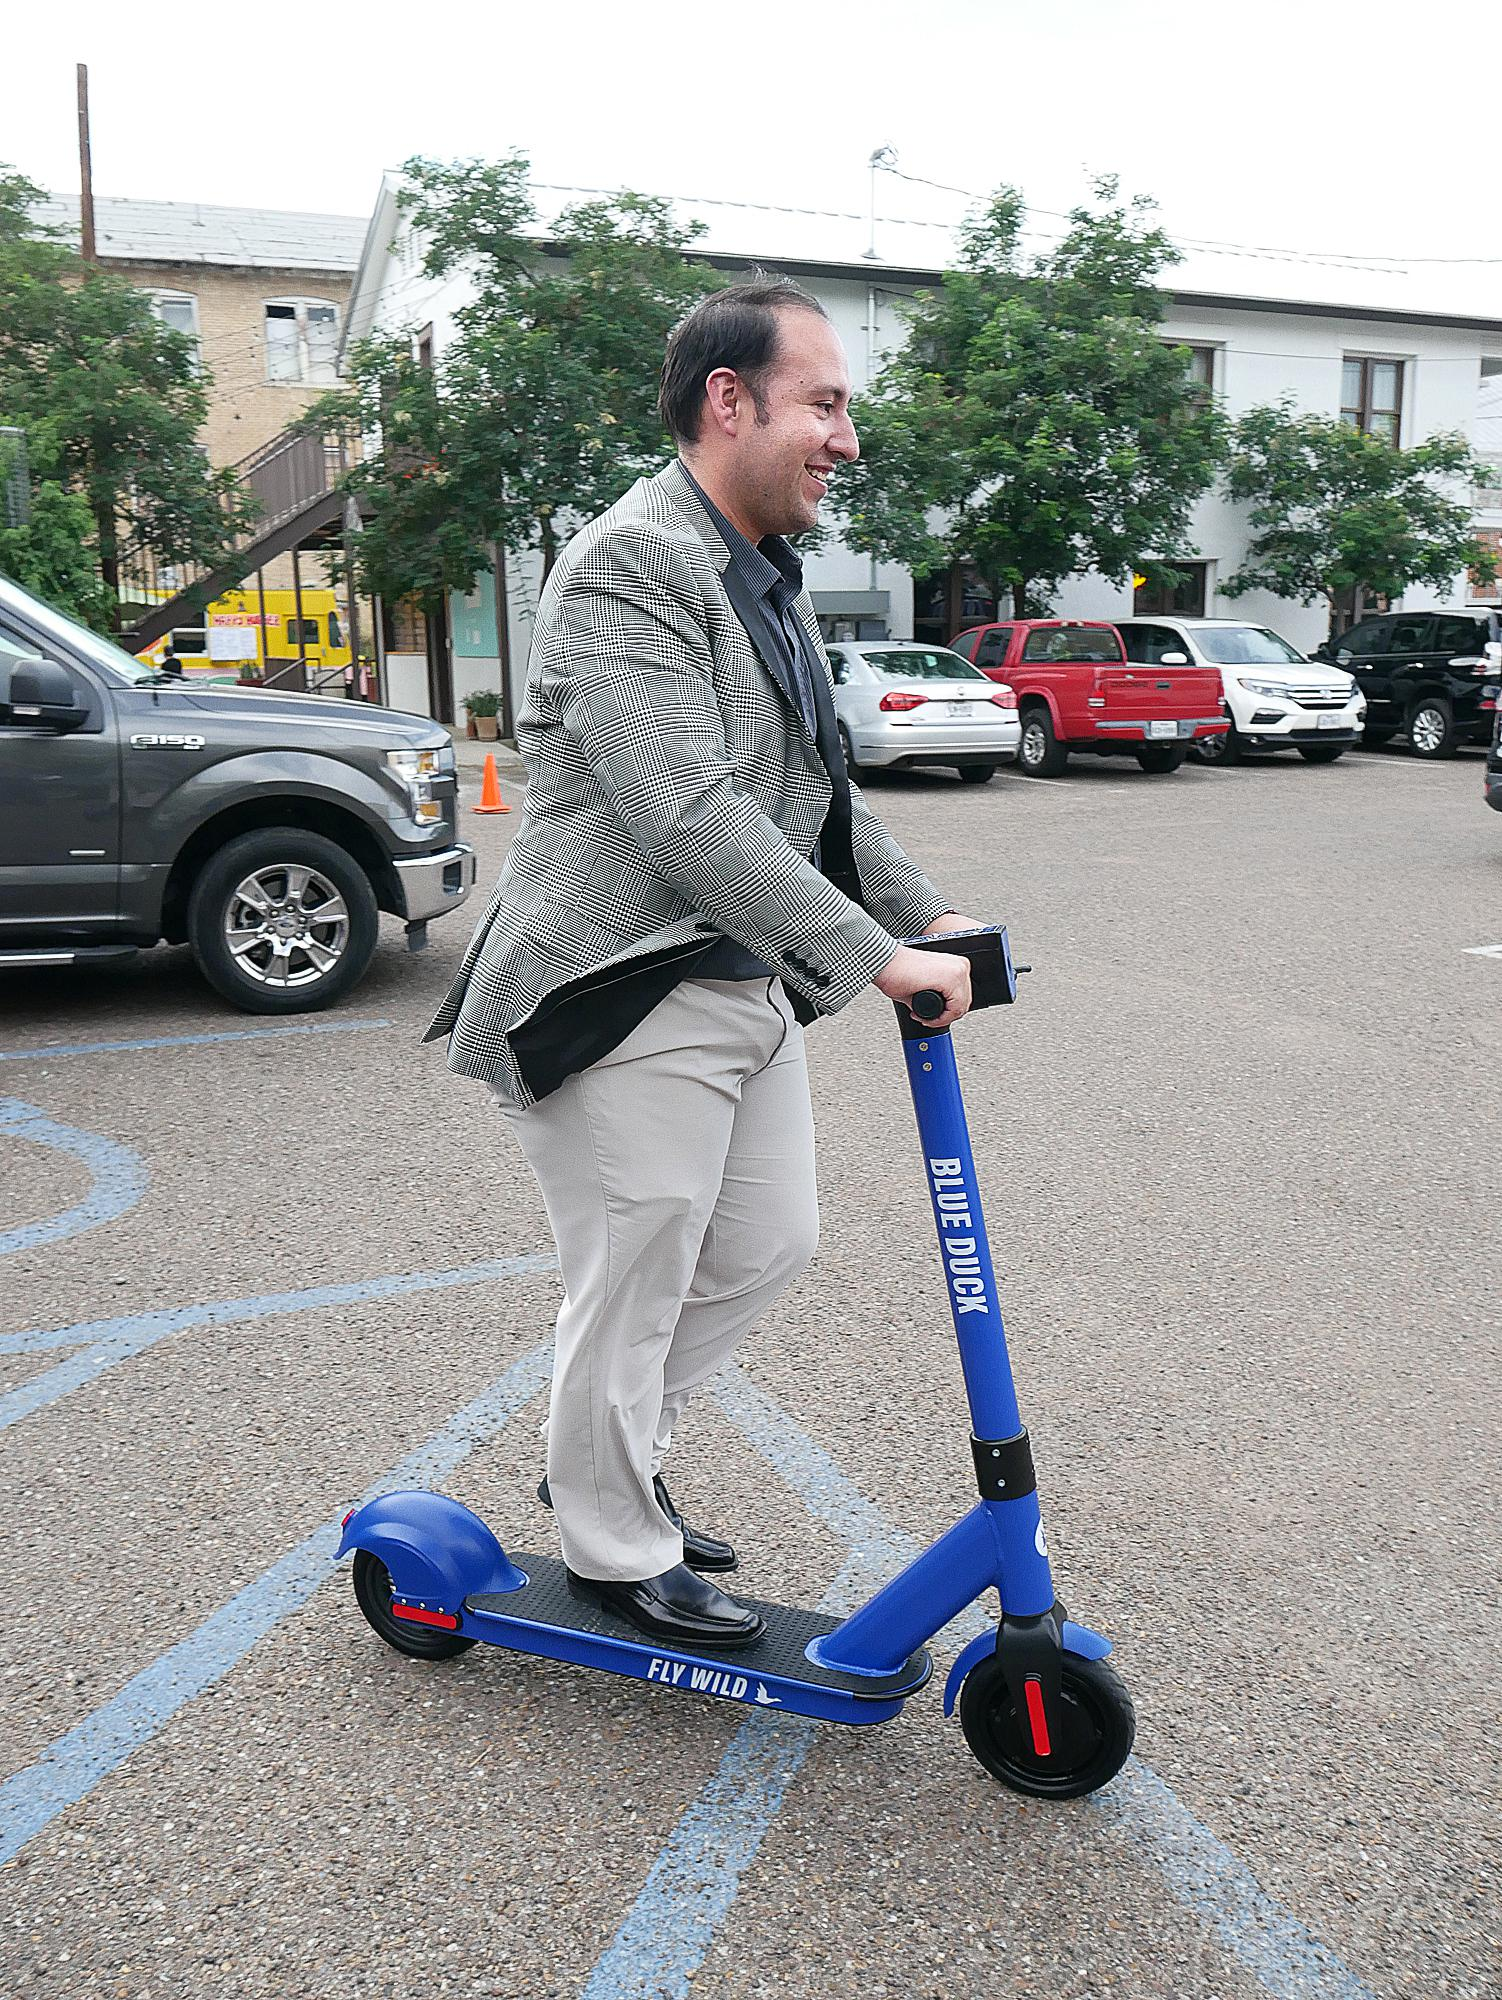 Electric scooters now a transportation option in Laredo